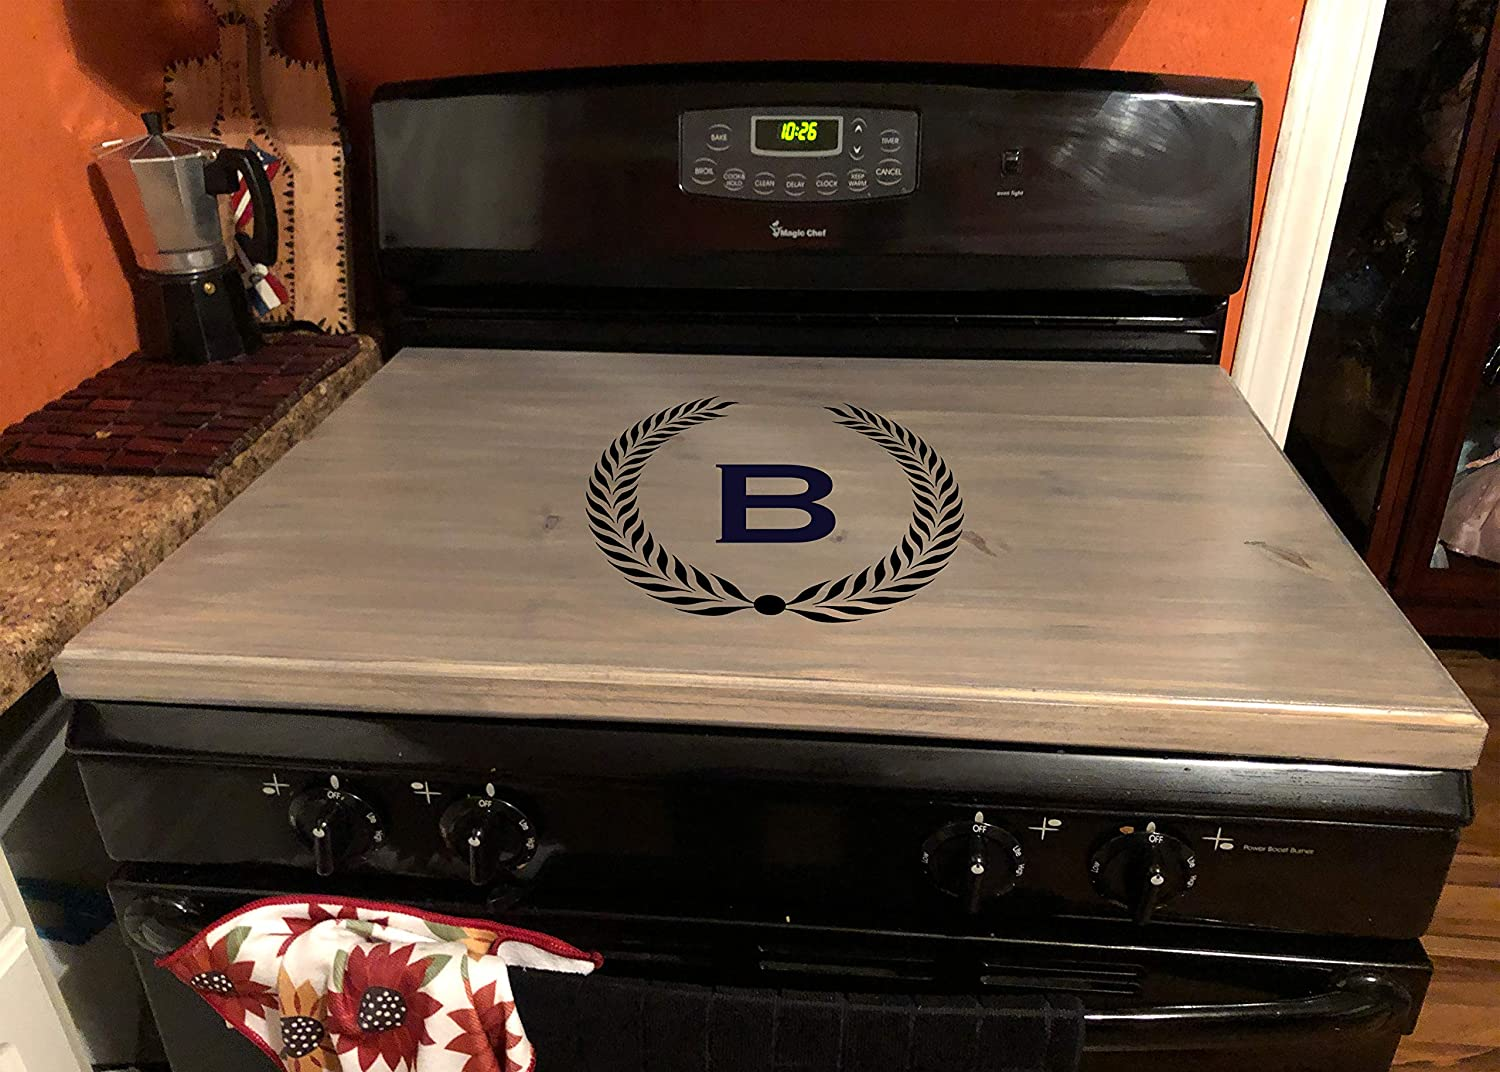 latinos r us Stove Top Cover, Custom Wooden Stove Cover Personalized (Dark Walnut)